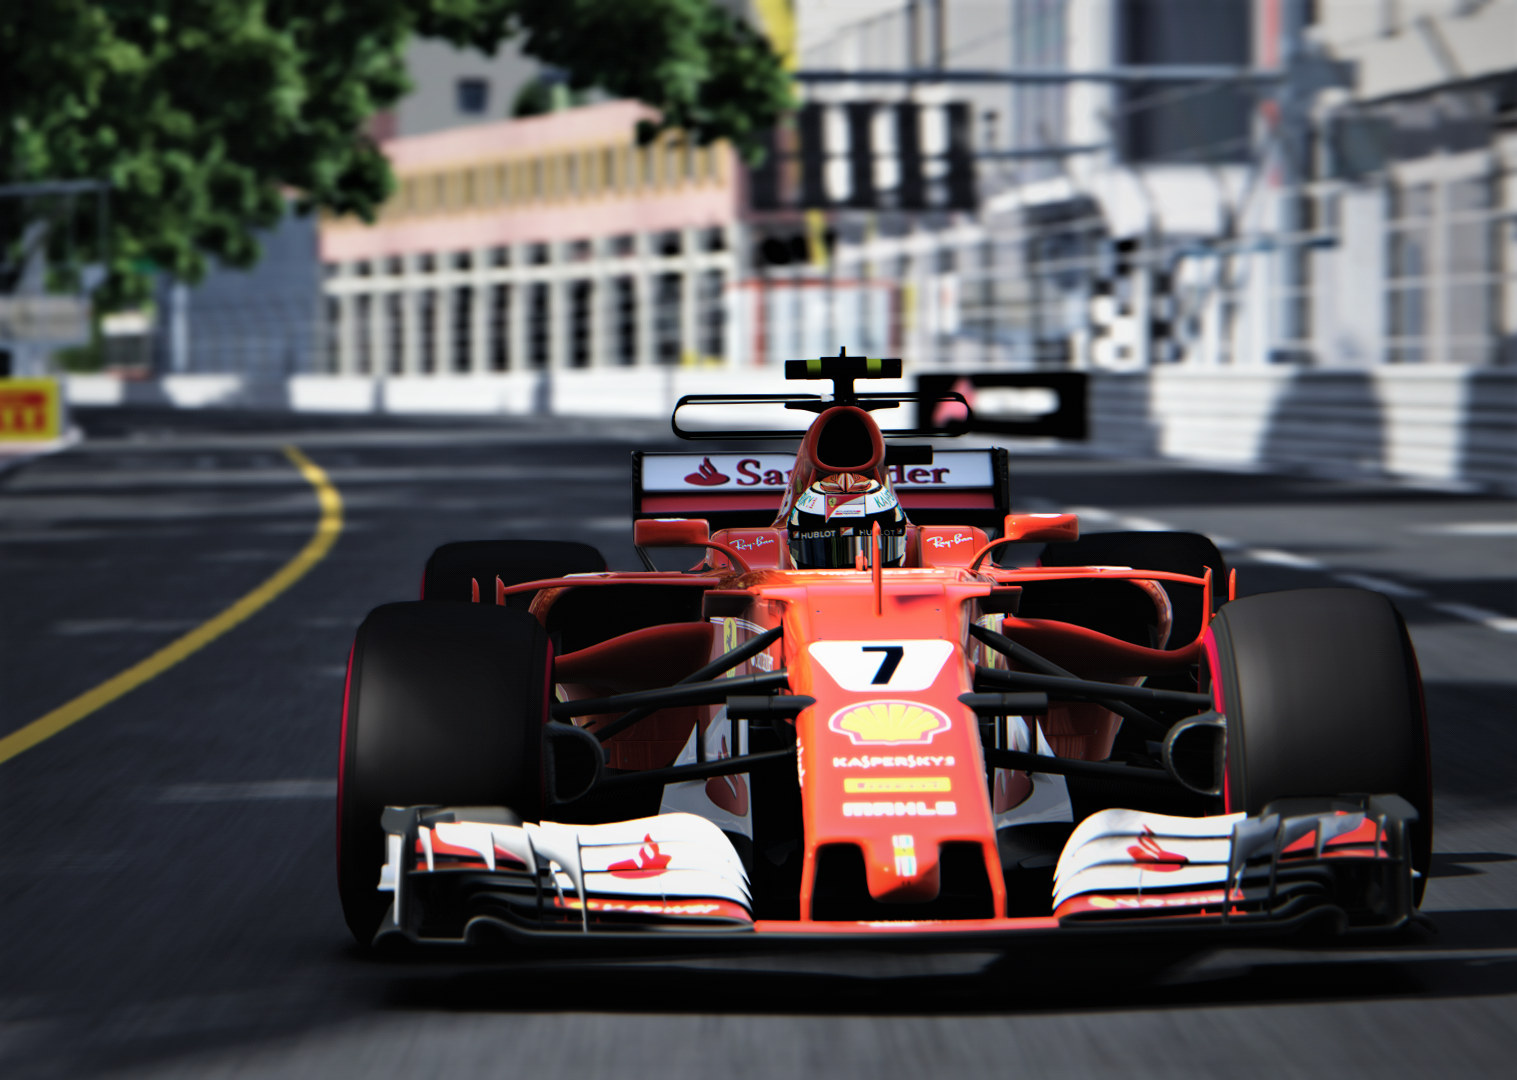 Screenshot_ks_ferrari_sf70h_monaco_osrw_1.1_27-11-120-22-11-1.png